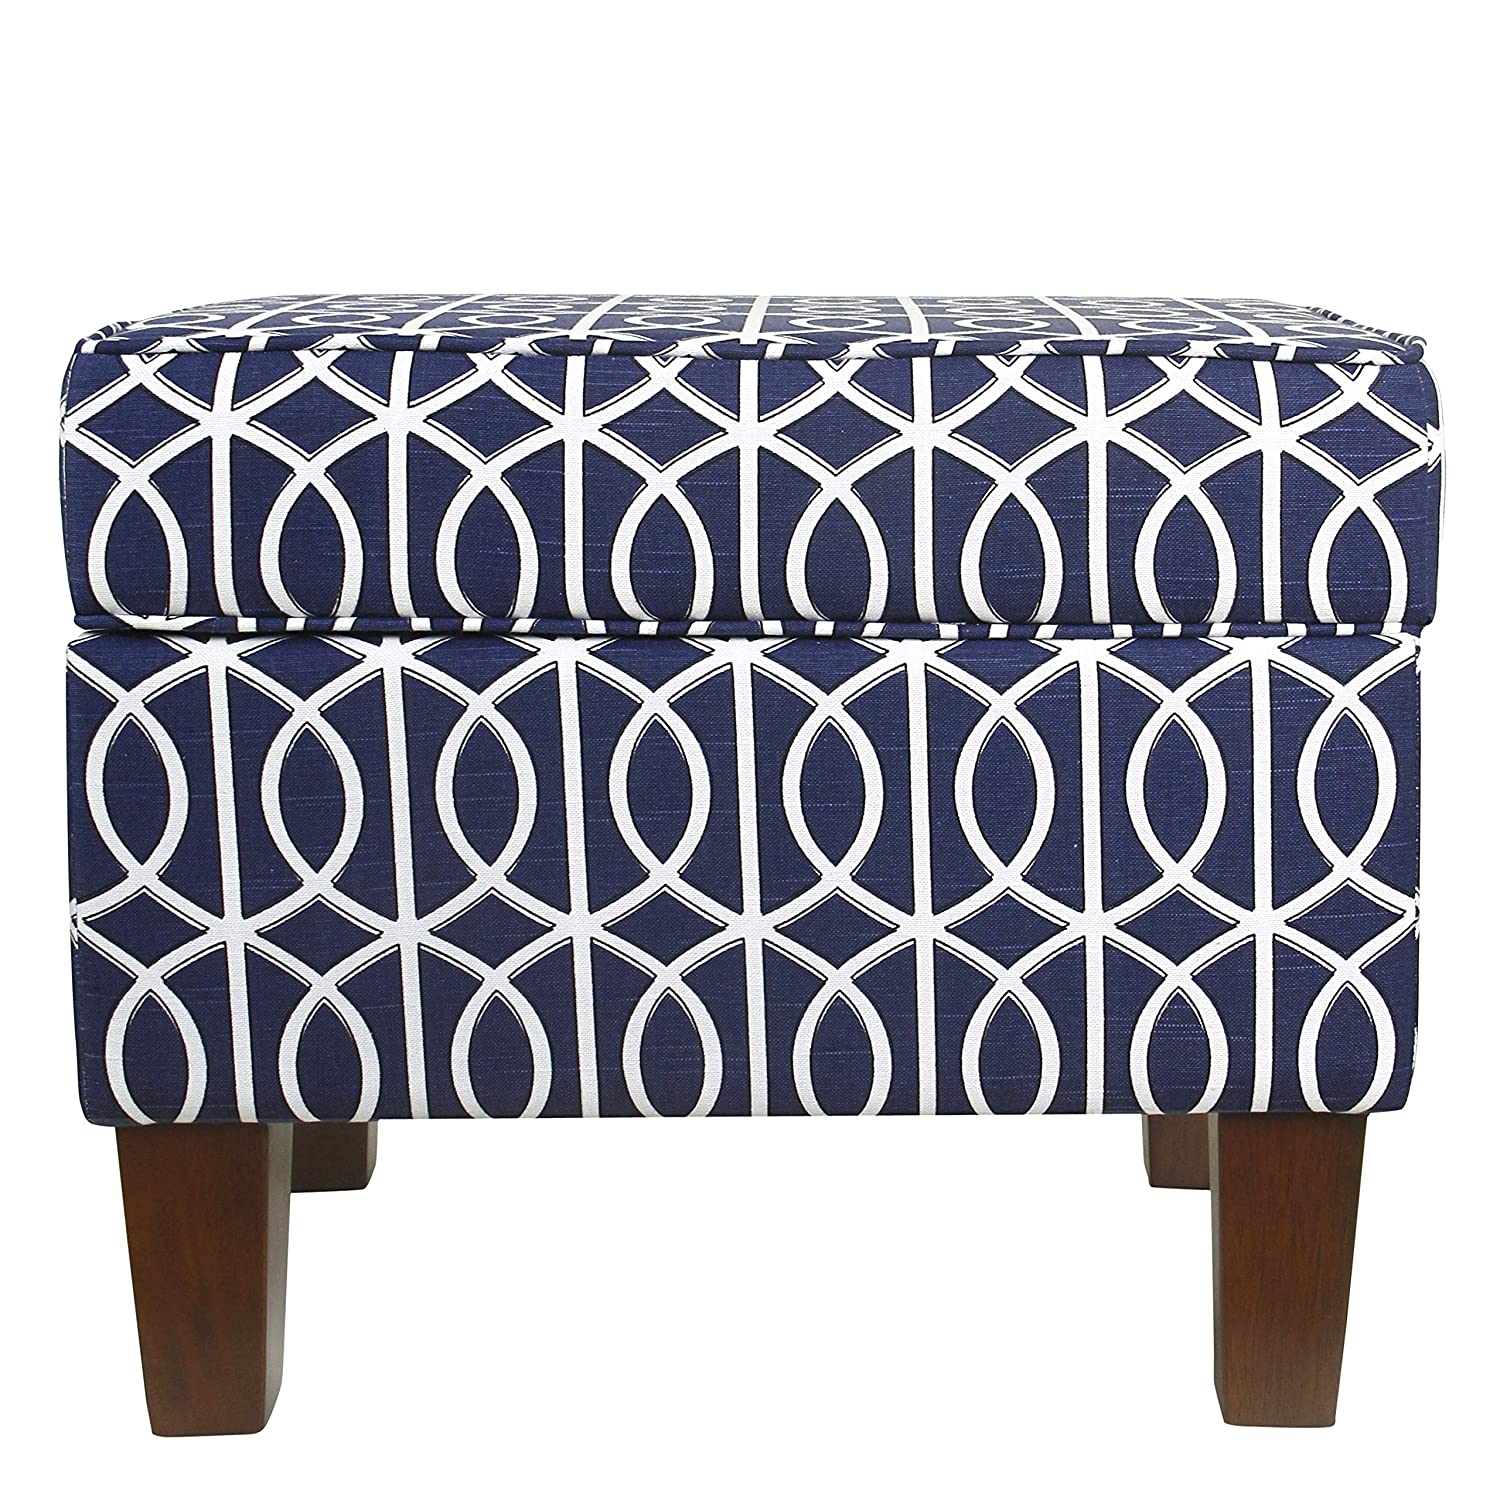 HomePop Square Storage Ottoman with Hinged Lid, Blue Trellis